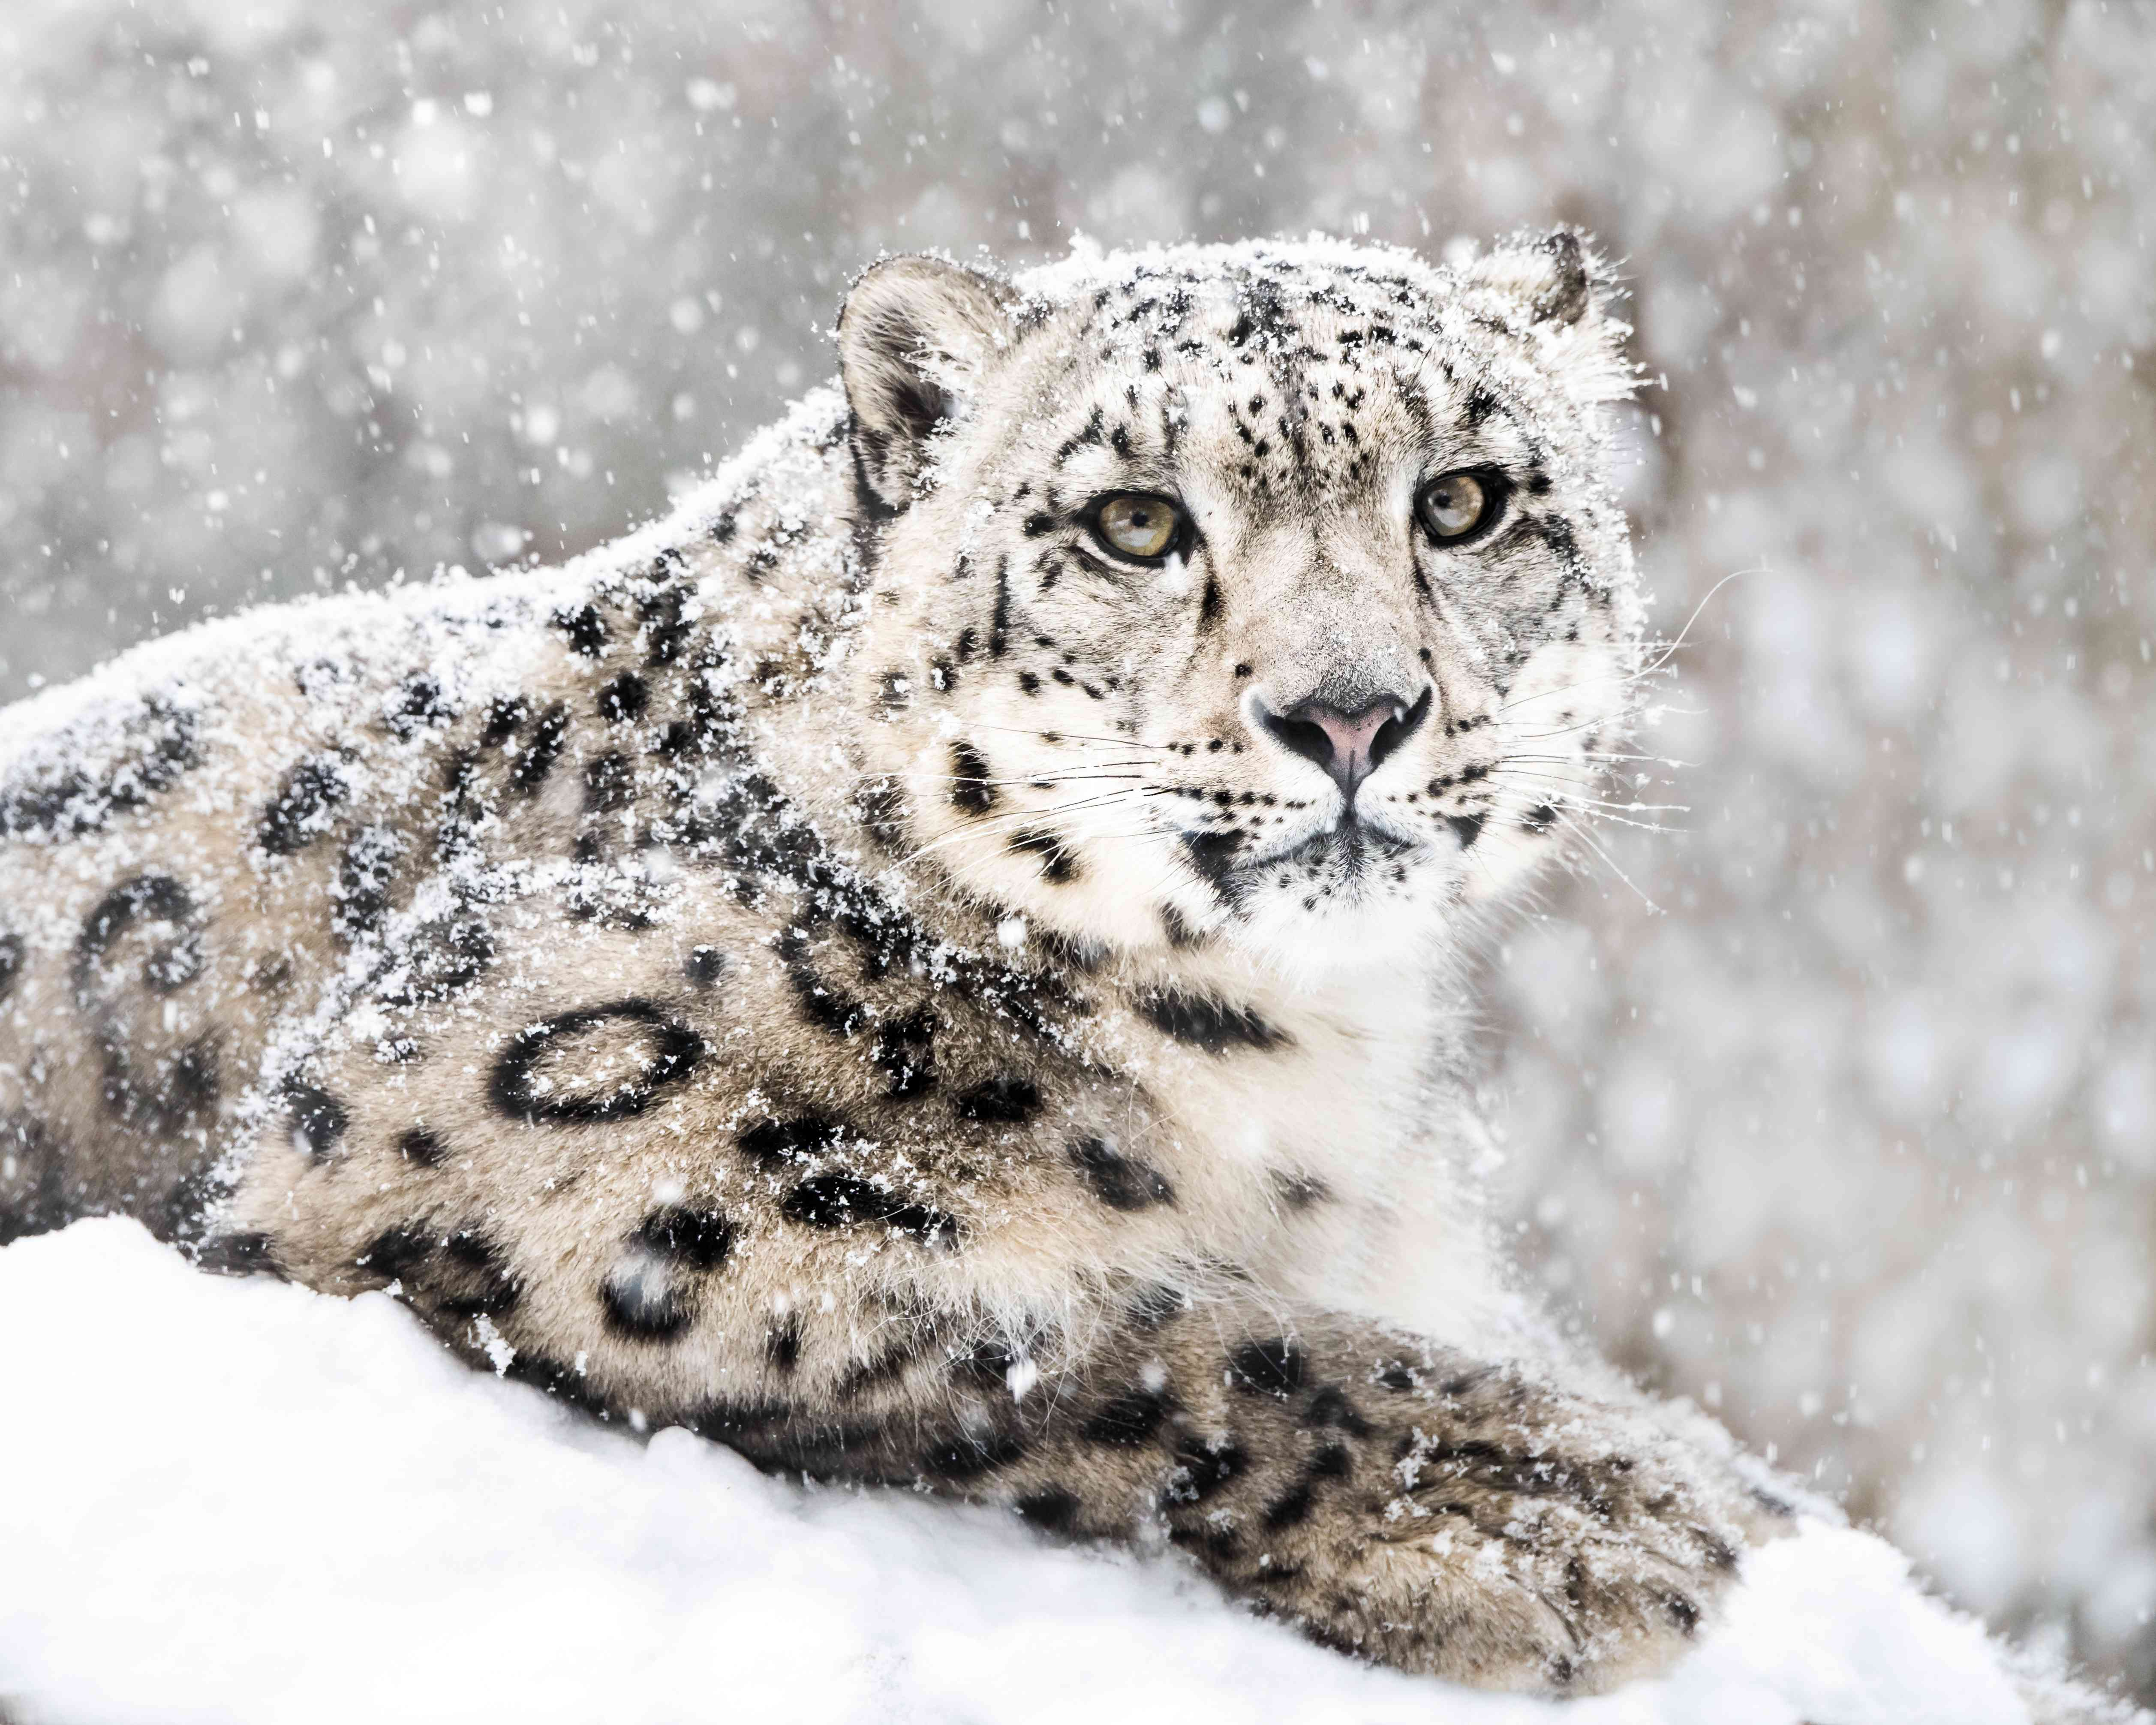 Snow leopard sitting in a snow storm